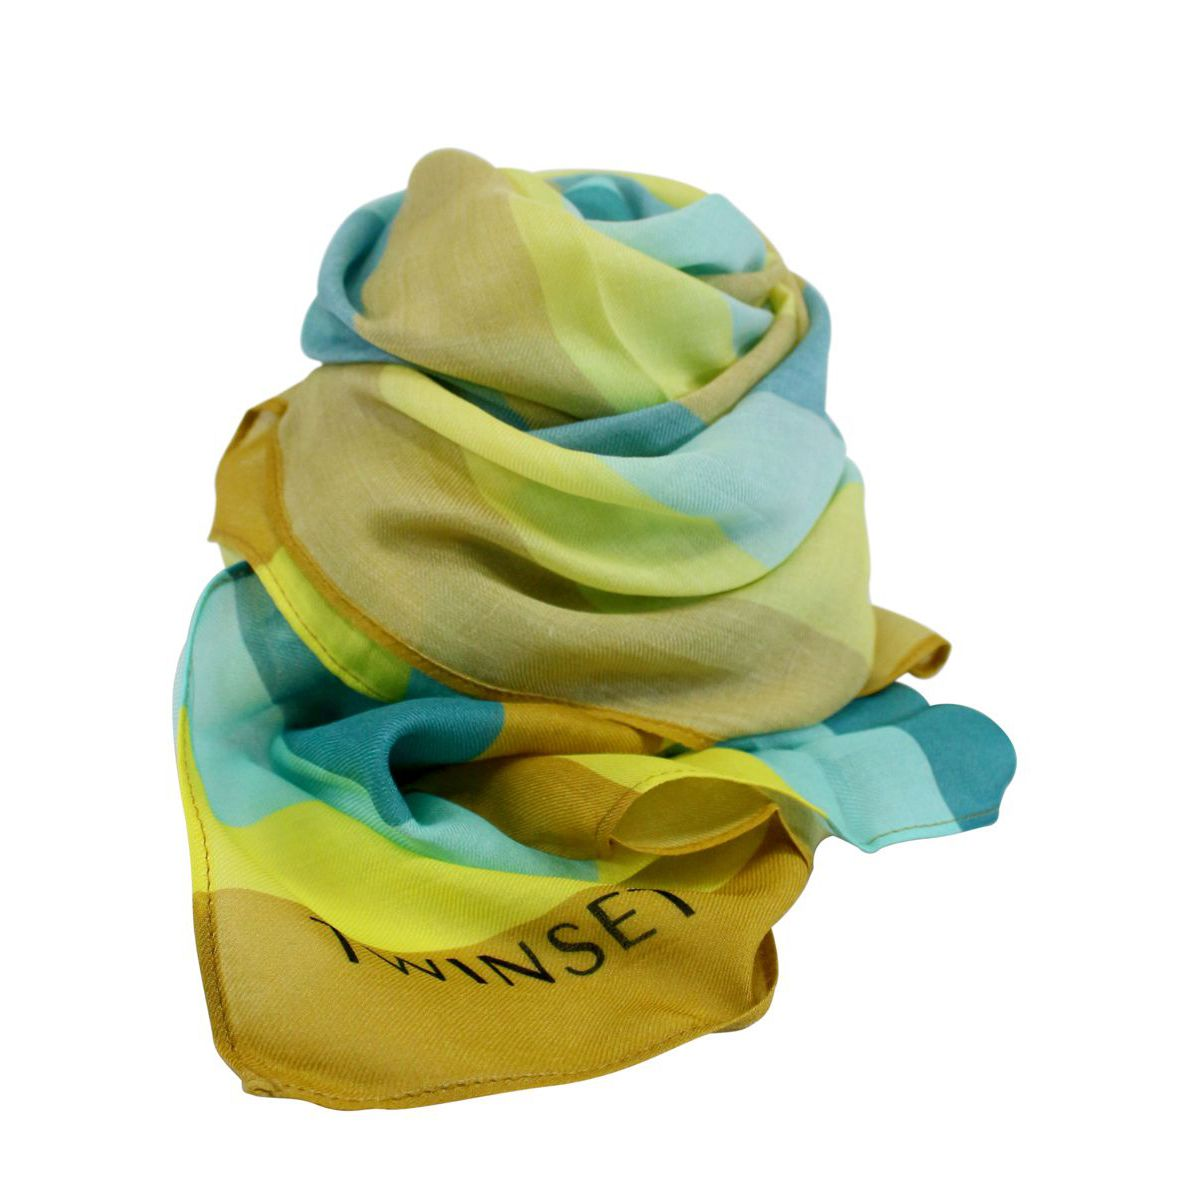 Foulard in misto modal e viscosa a fantasia Verde / giallo Twin-Set